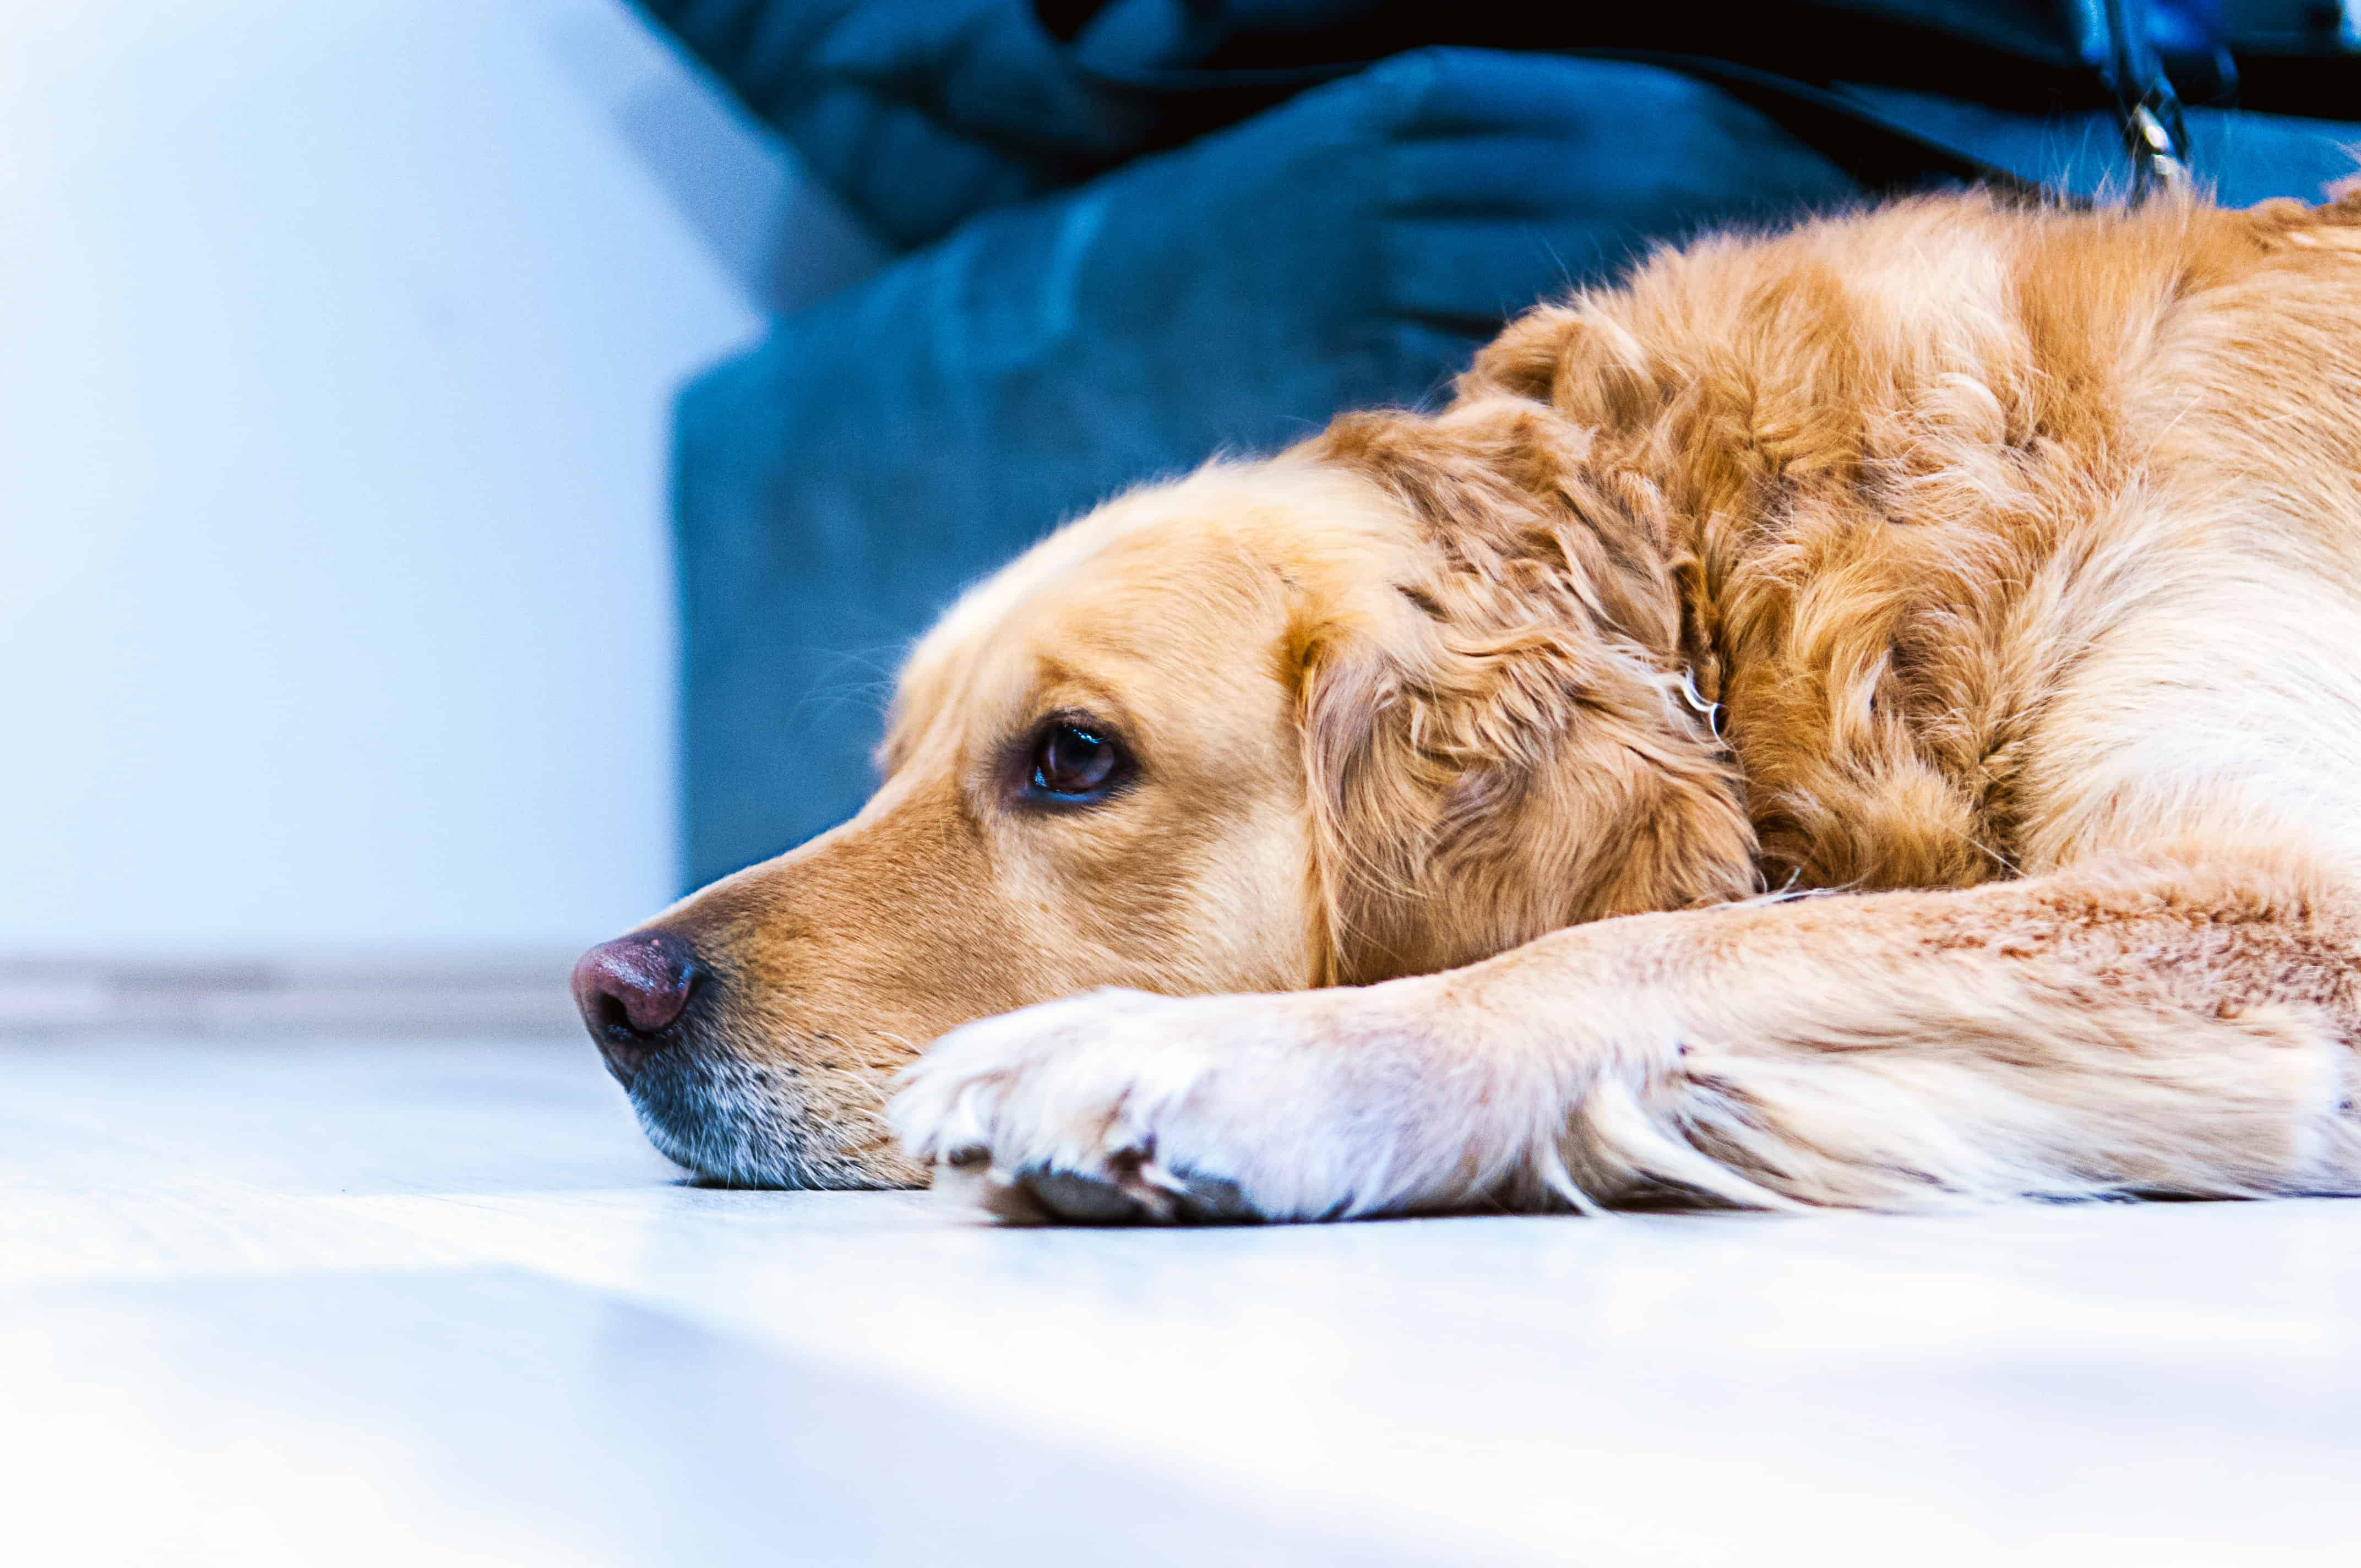 A golden retriever rests after it received his dog vaccinations at home.